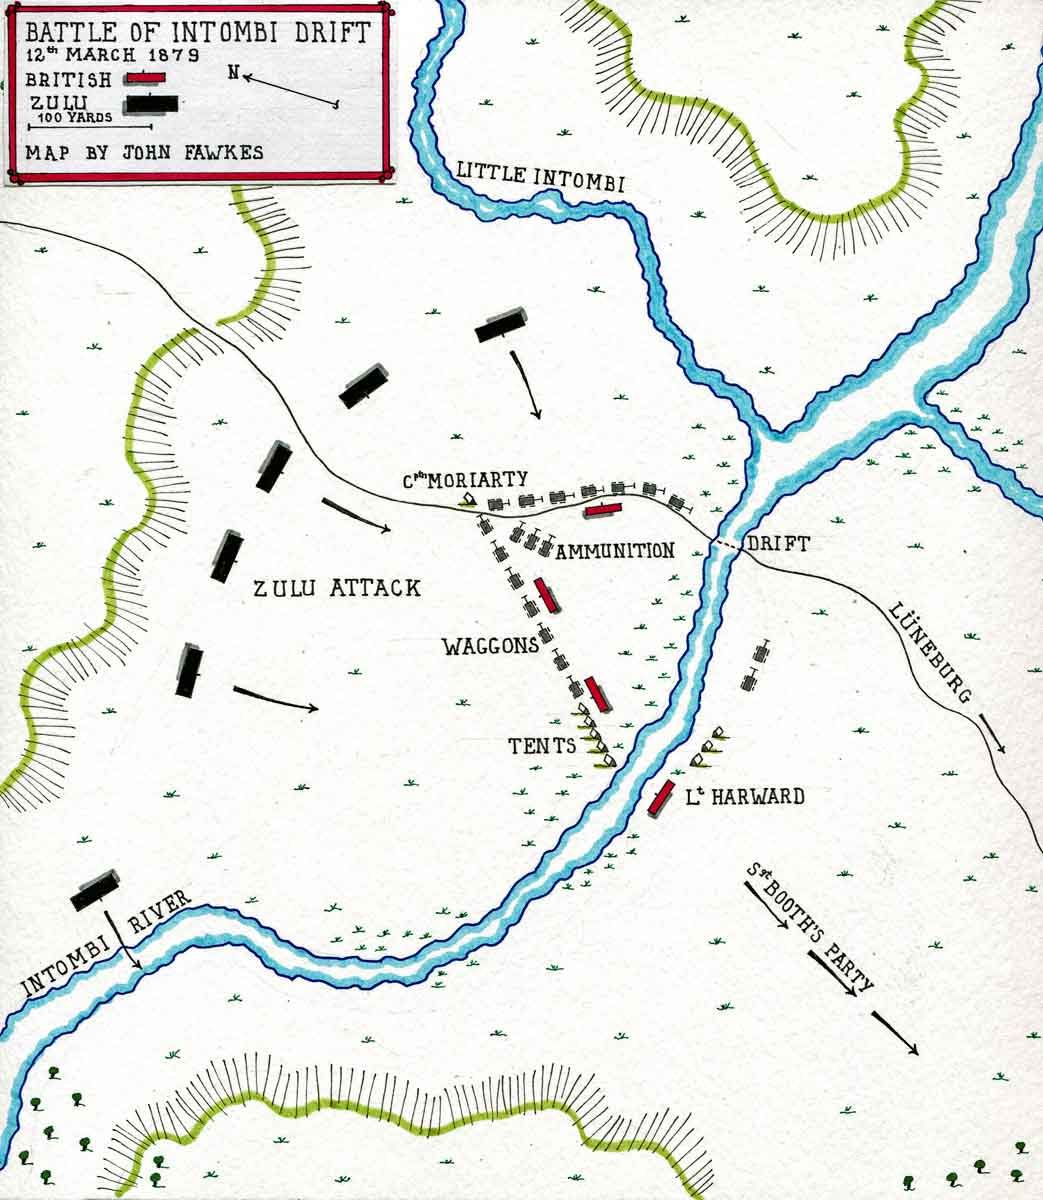 Map of the Intombi River Disaster on 12th March 1879 in the Zulu War: map by John Fawkes